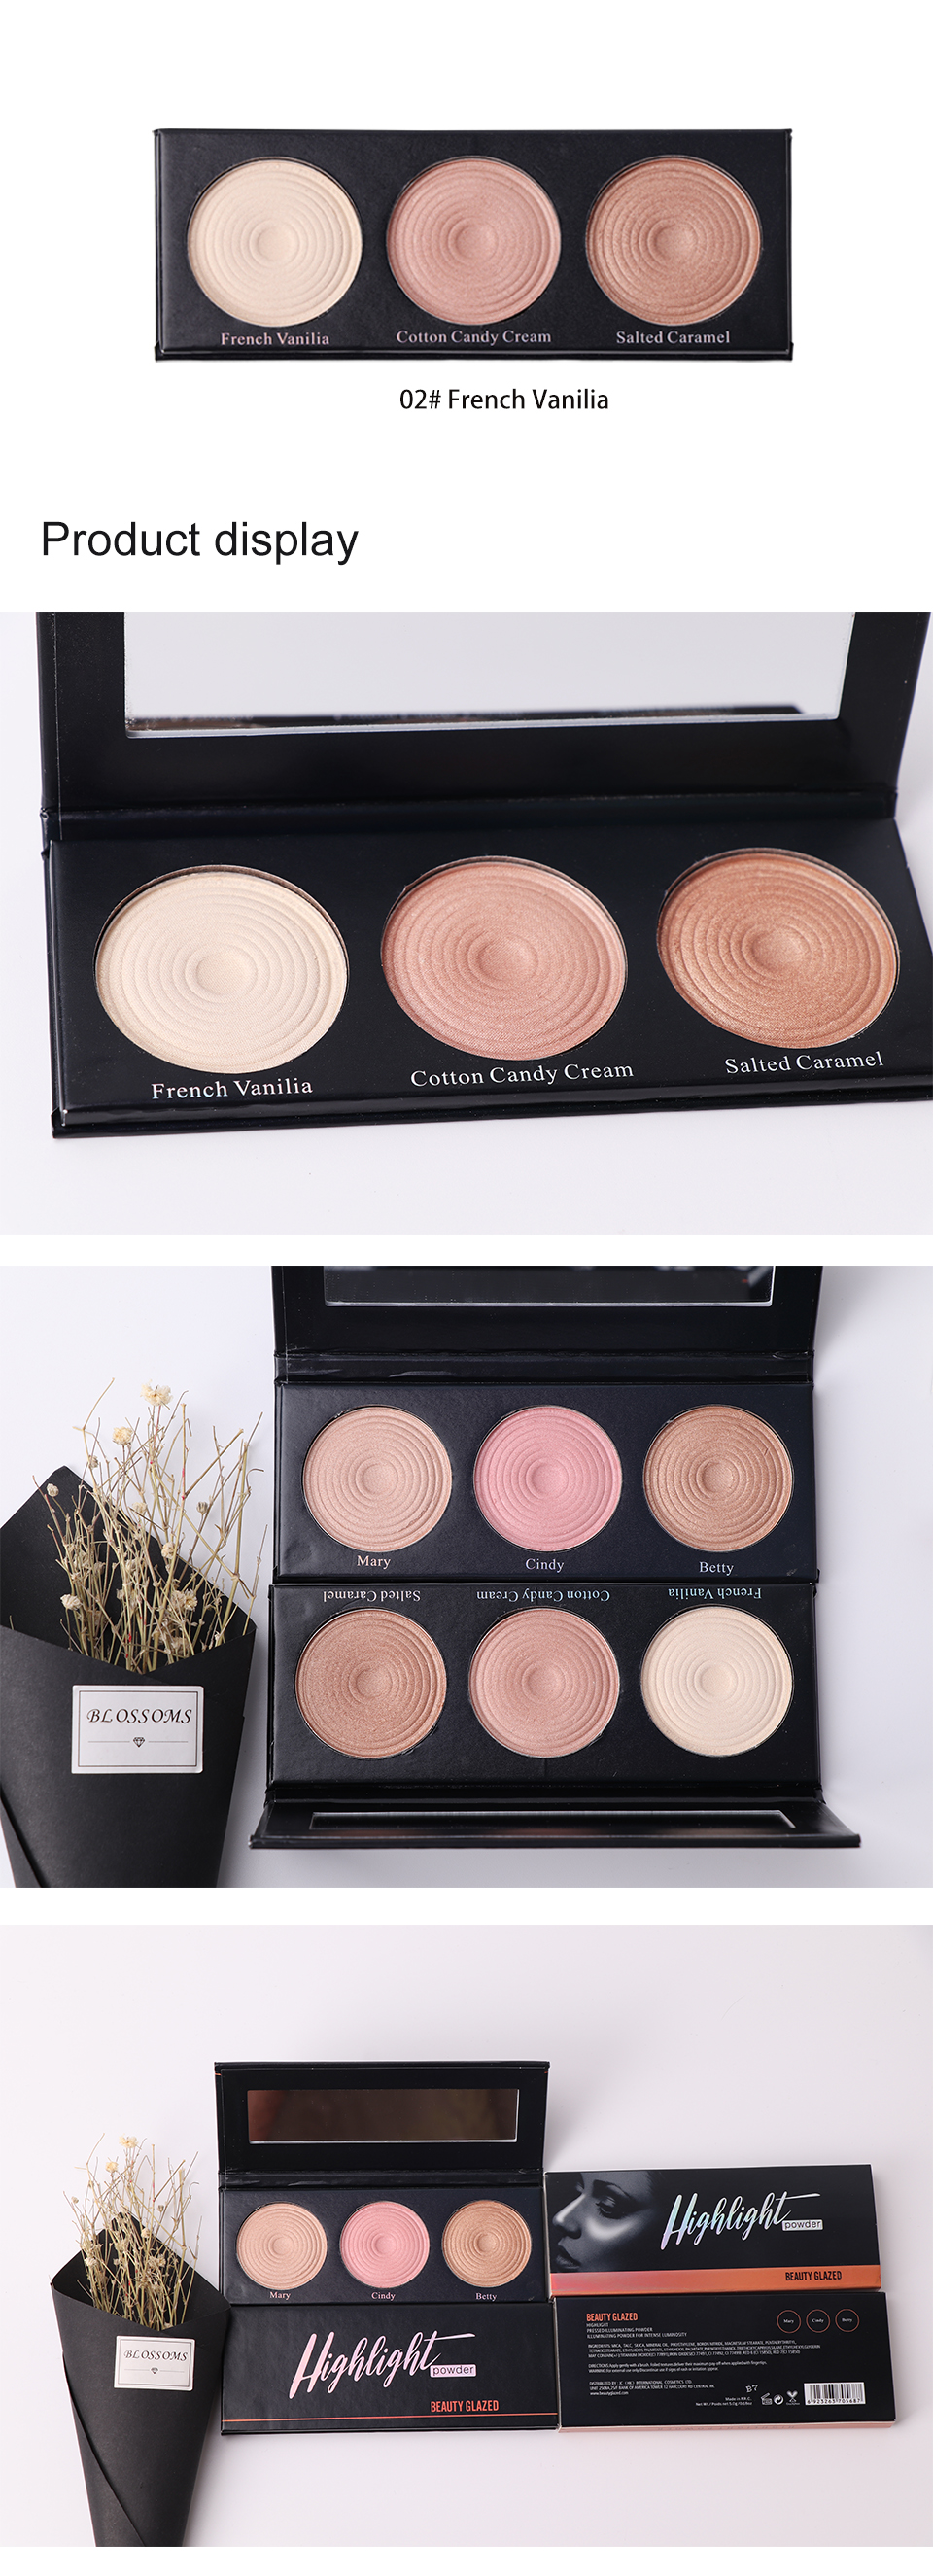 BEAUTY GLAZED Brand Highlight Pressed Illuminating Powder Easy To Wear Concealer Powder Natural Compact Powder 3 Colors In 1 2